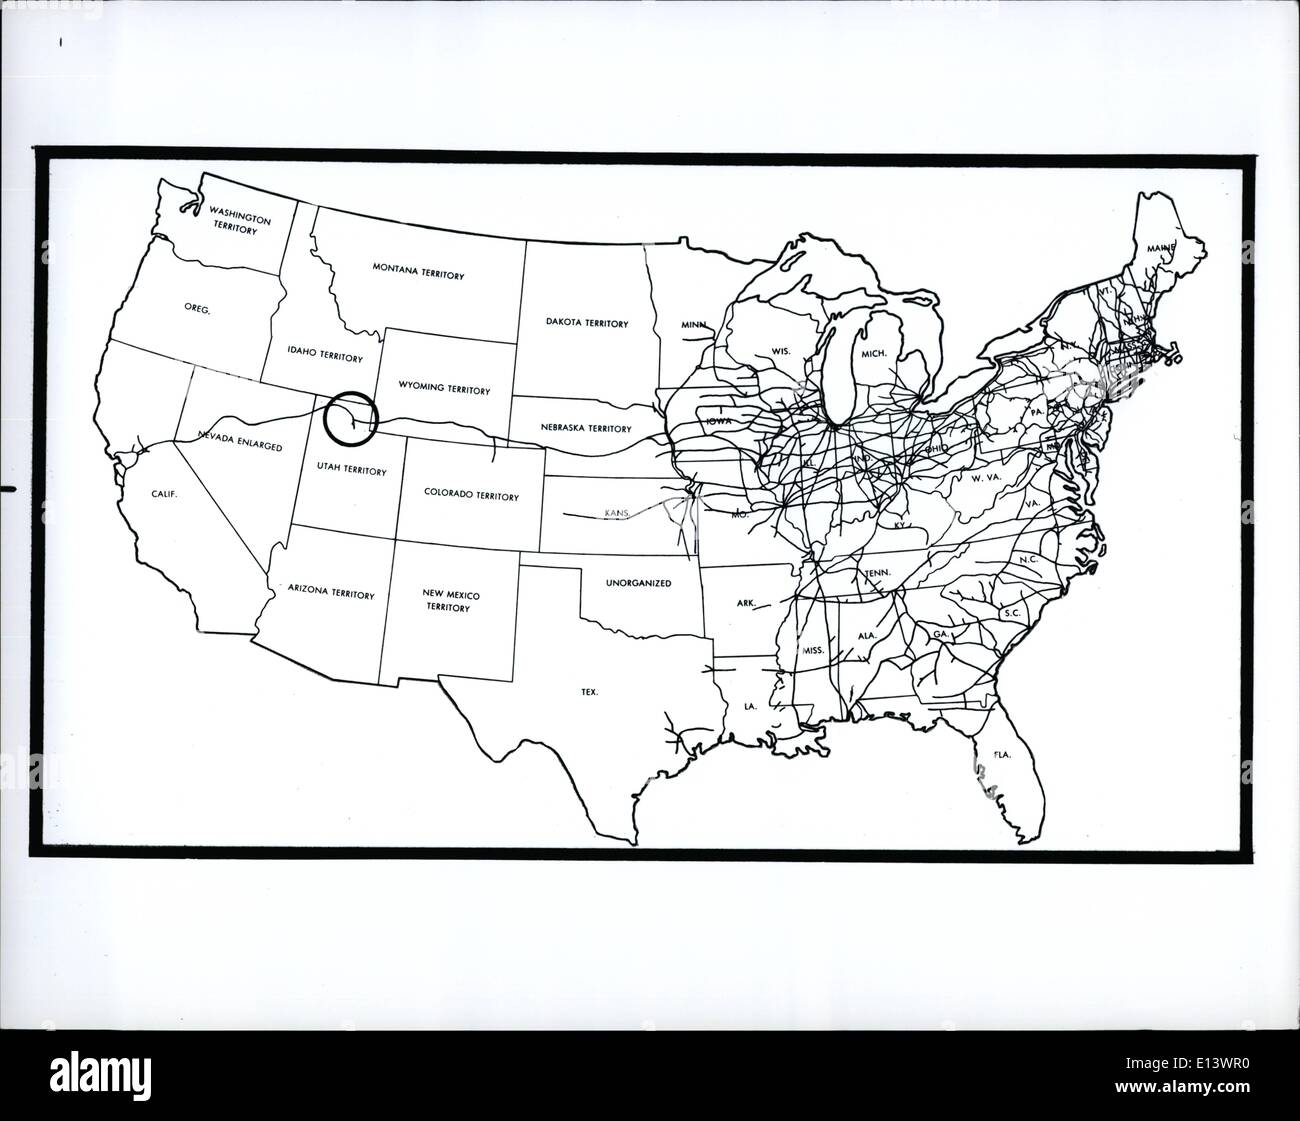 Latest Map Images Map Transcontinental Railroad Golden Spike